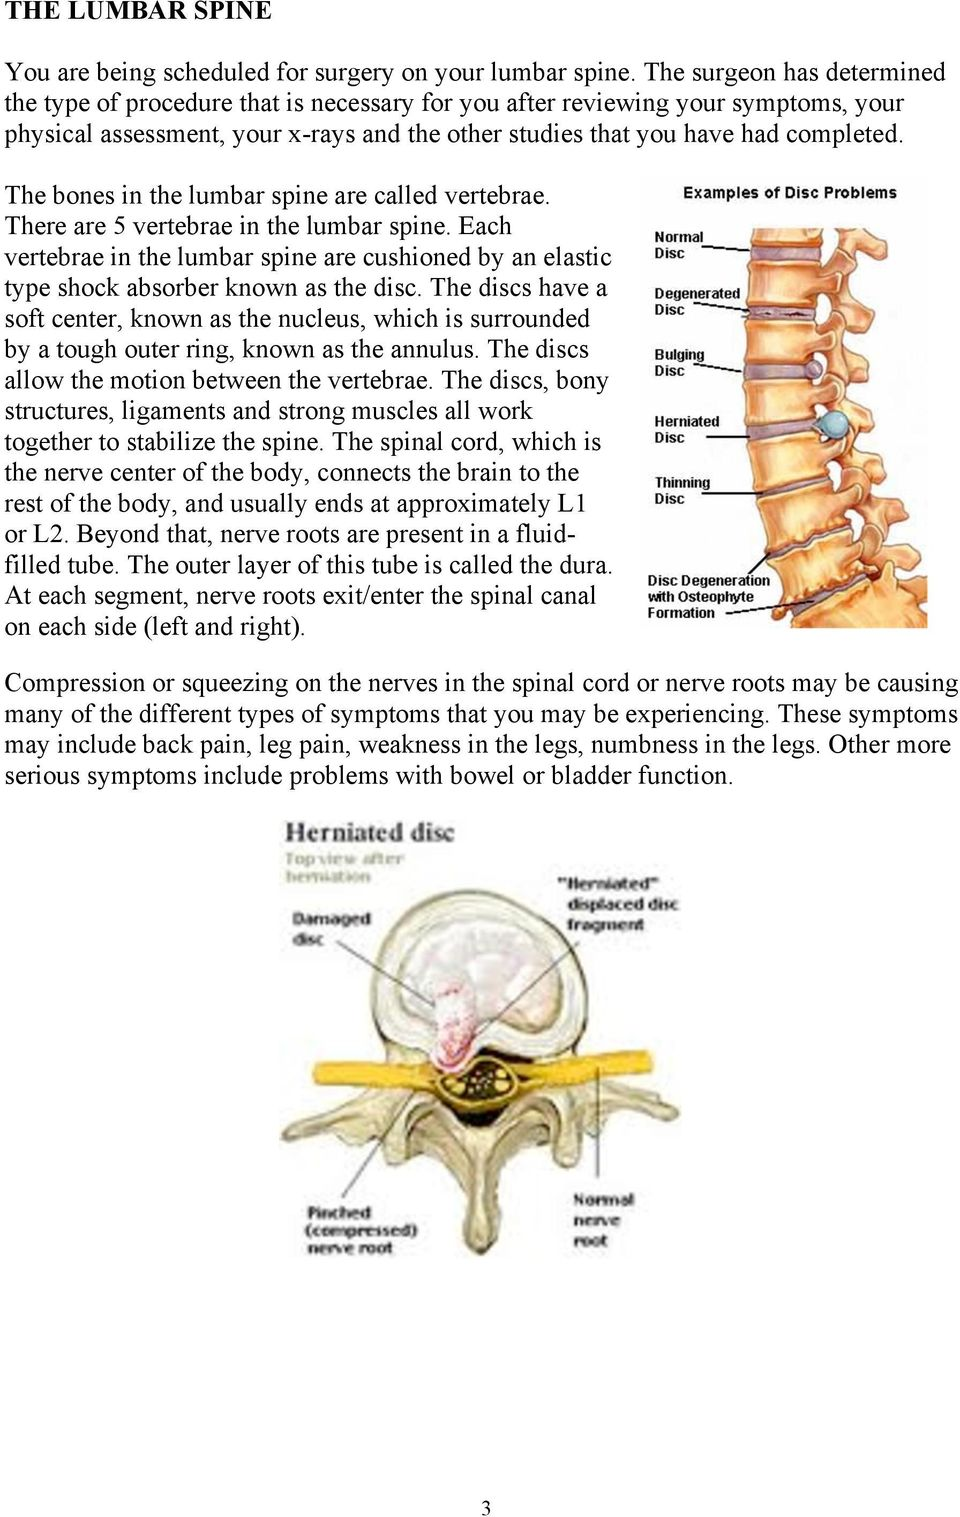 The bones in the lumbar spine are called vertebrae. There are 5 vertebrae in the lumbar spine. Each vertebrae in the lumbar spine are cushioned by an elastic type shock absorber known as the disc.